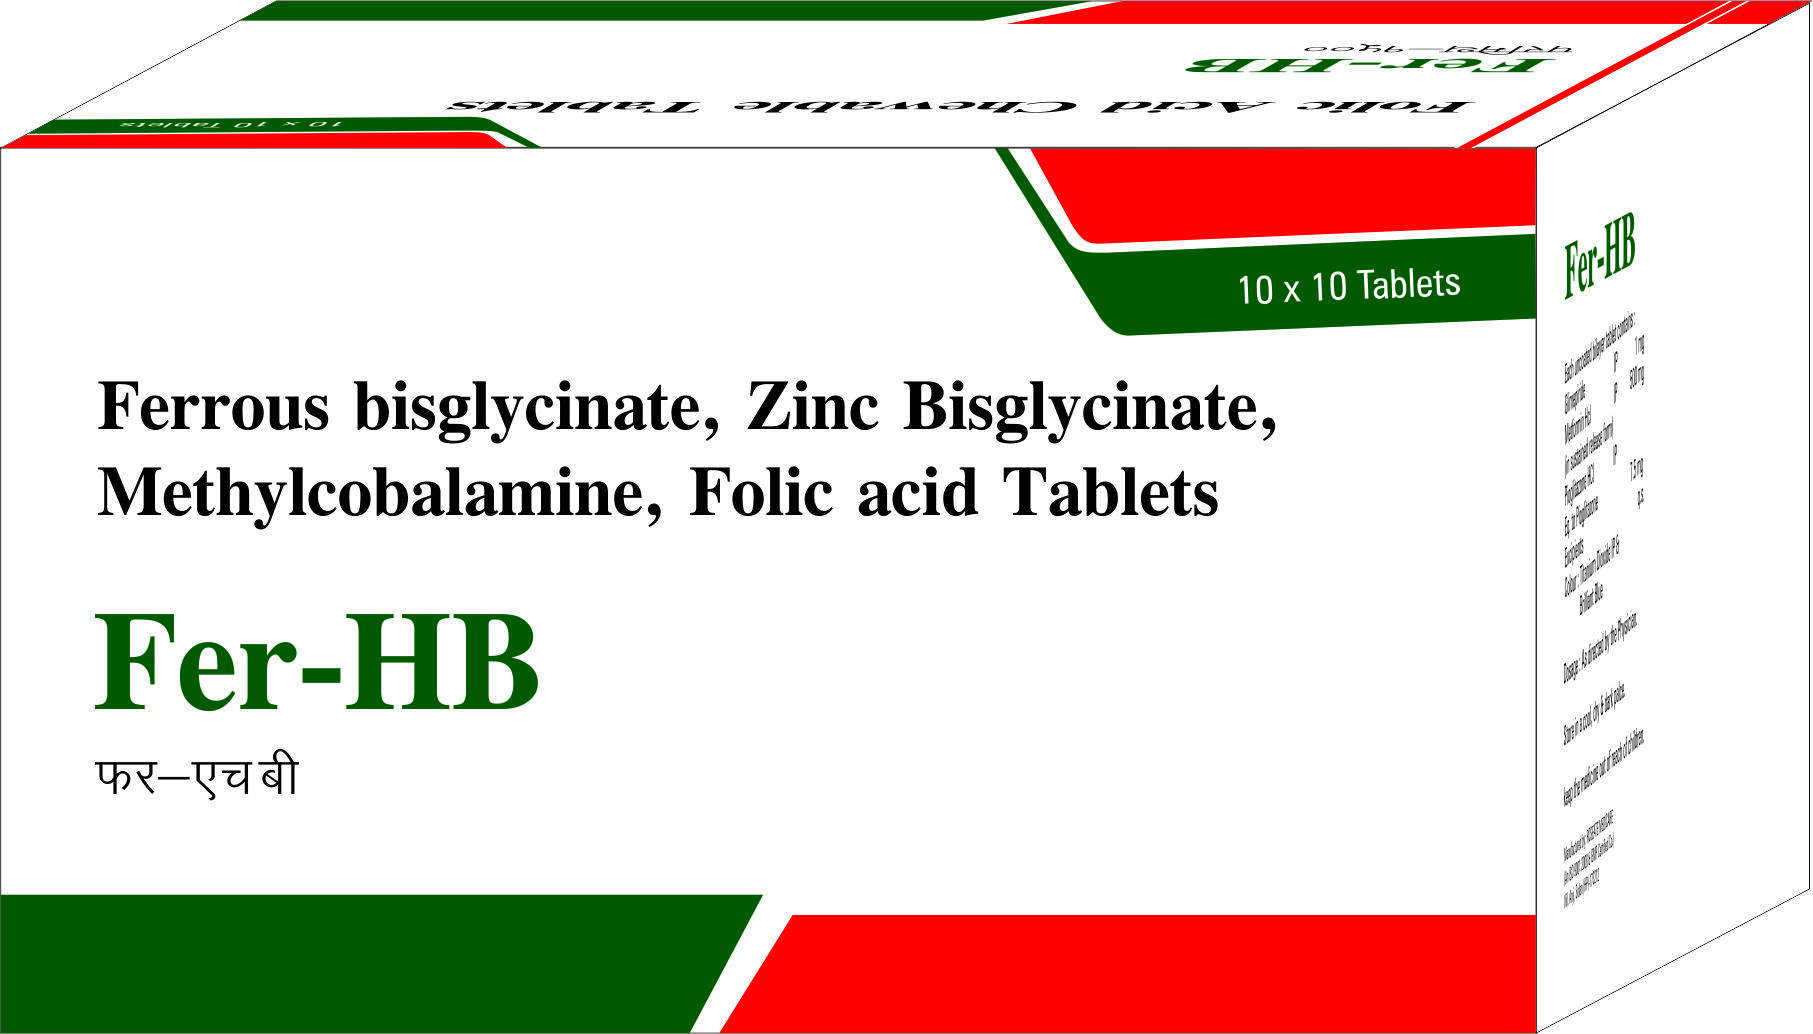 Ferrous Bisglycinate Tablet